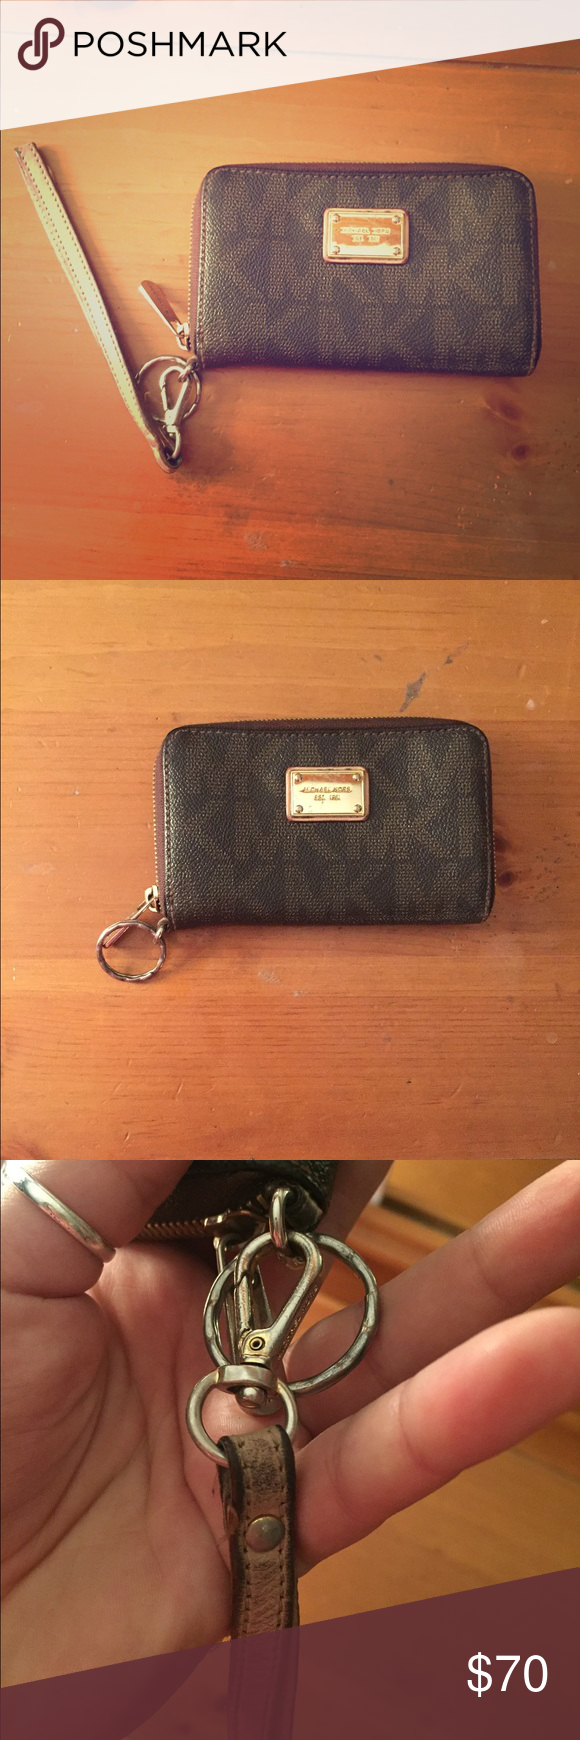 Michael Kors Wristlet Wallet Pre-Loved ❤️ Wear on the strap but as I showed in my pictures you could just take it off and use it just as a wallet if you wanted to! The rest of the wallet is in pretty good condition! Michael Kors Bags Clutches & Wristlets